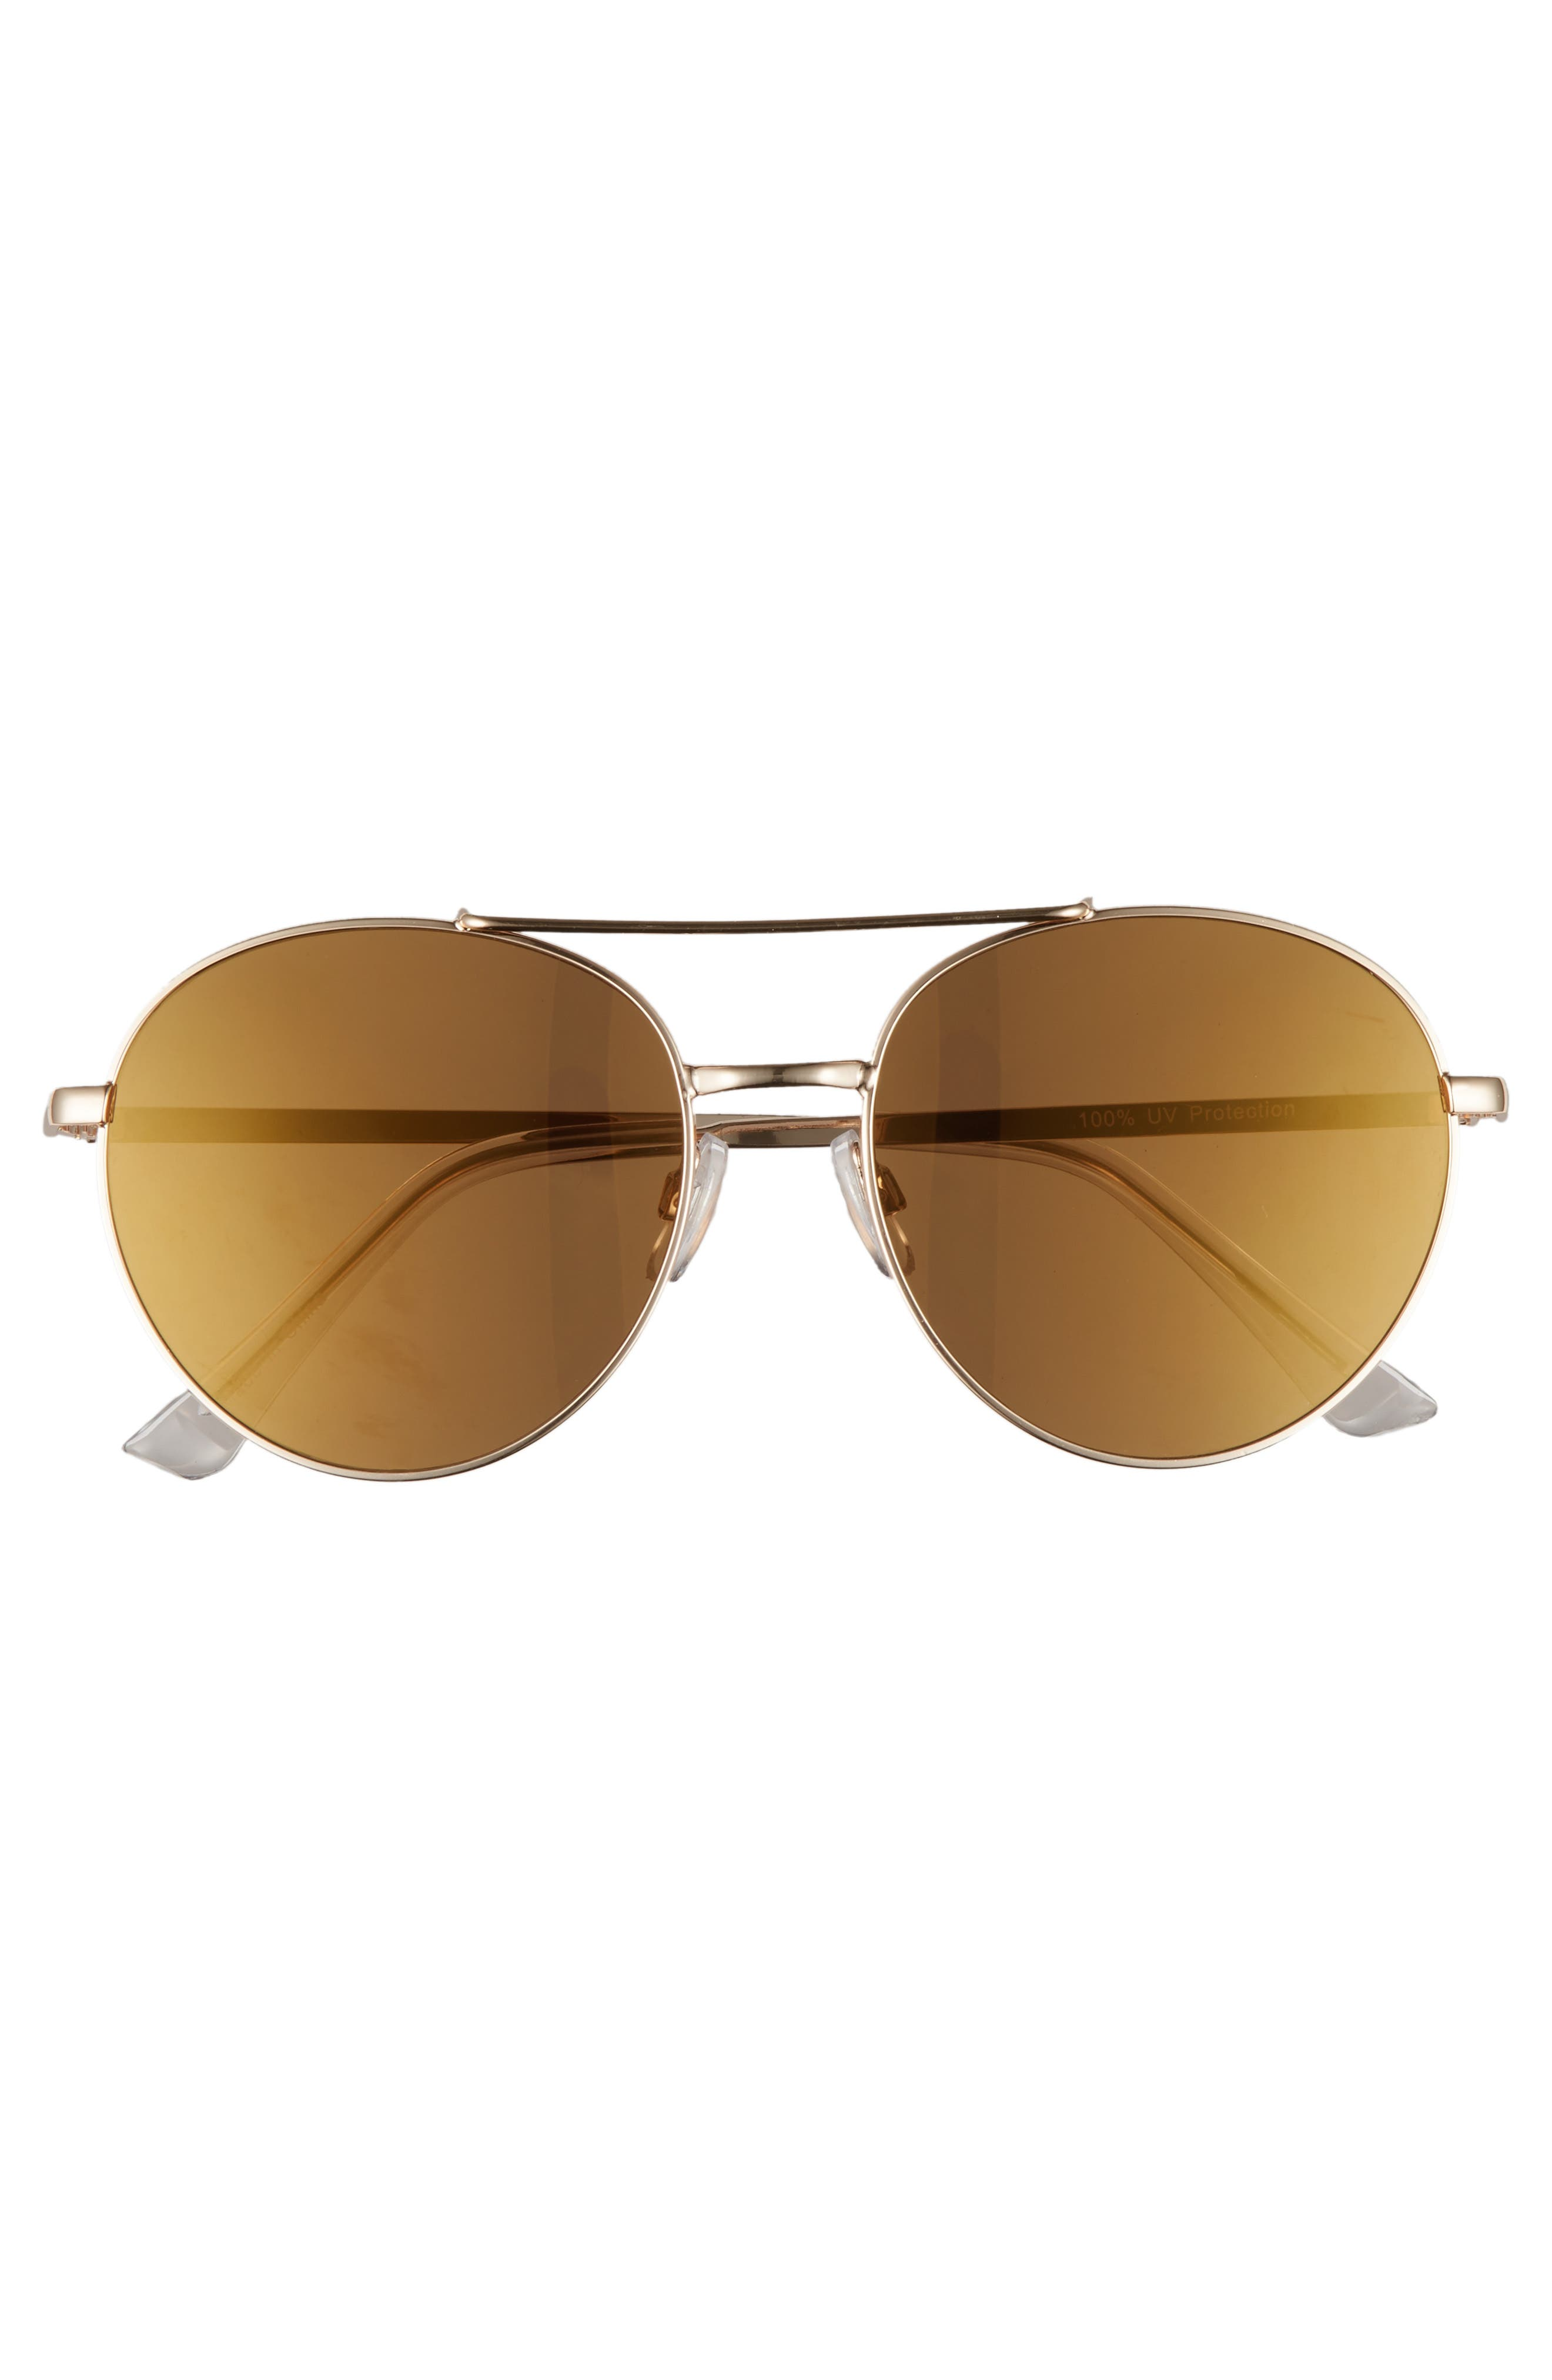 Lucky Seven 55mm Metal Aviator Sunglasses,                             Alternate thumbnail 3, color,                             Gold/ Gold